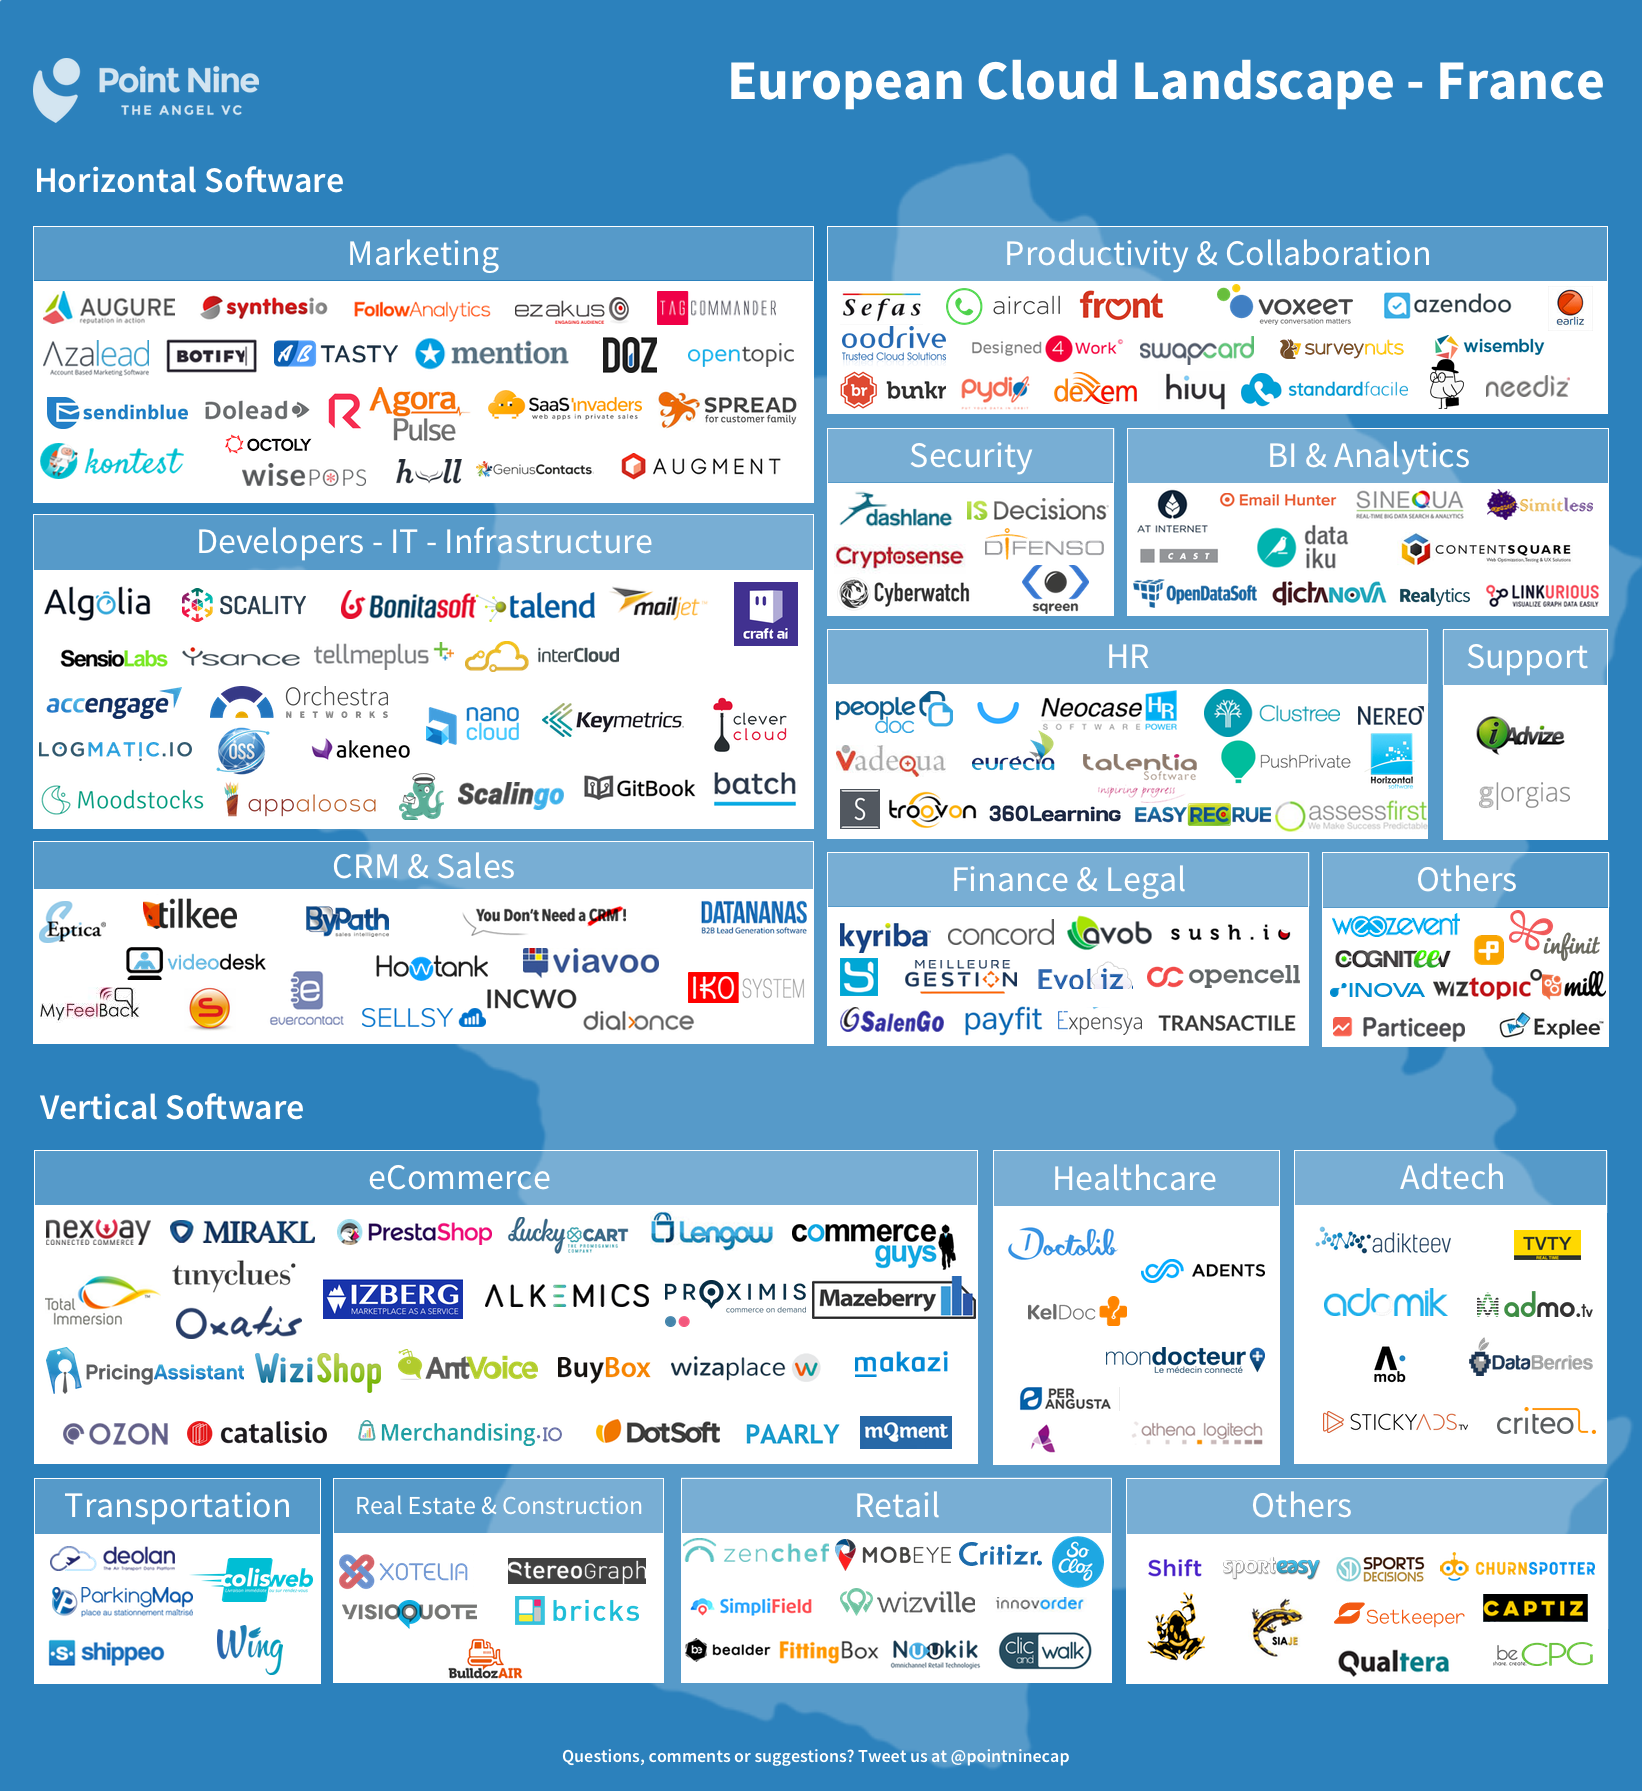 French Cloudscape: 200+ Cloud Software Companies Analyzed and Mapped